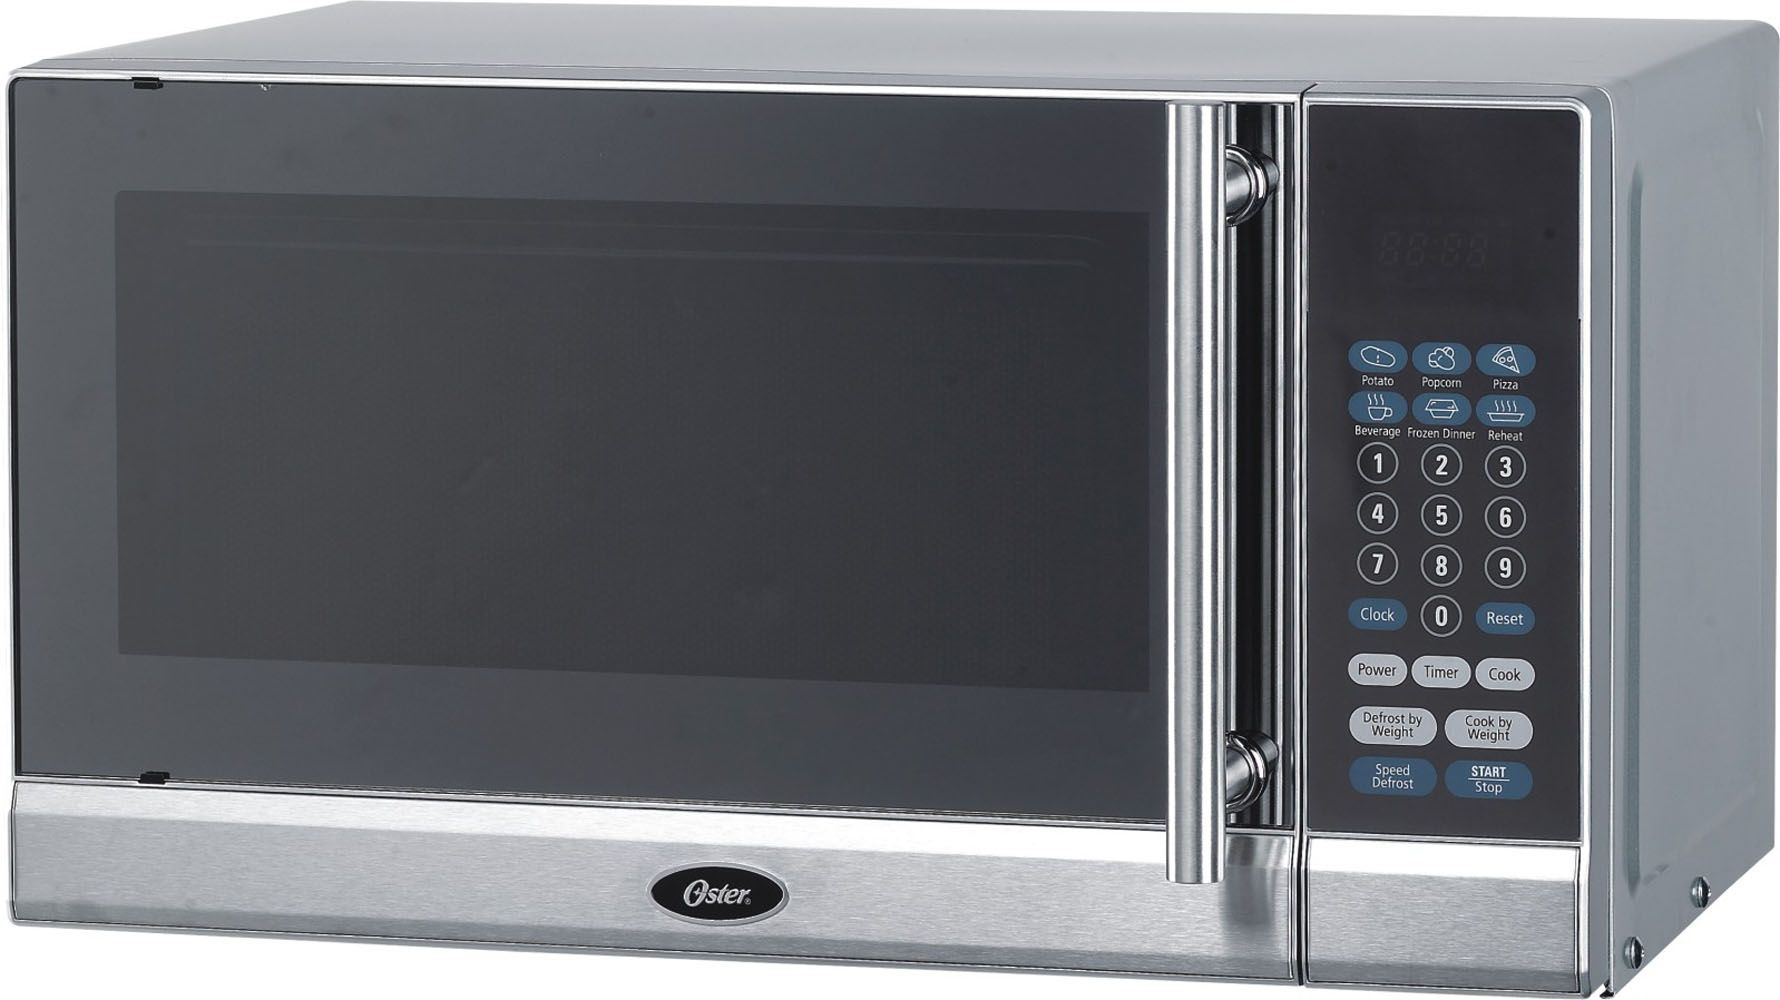 Oster Ogg3701 0 7 Cubic Foot Microwave